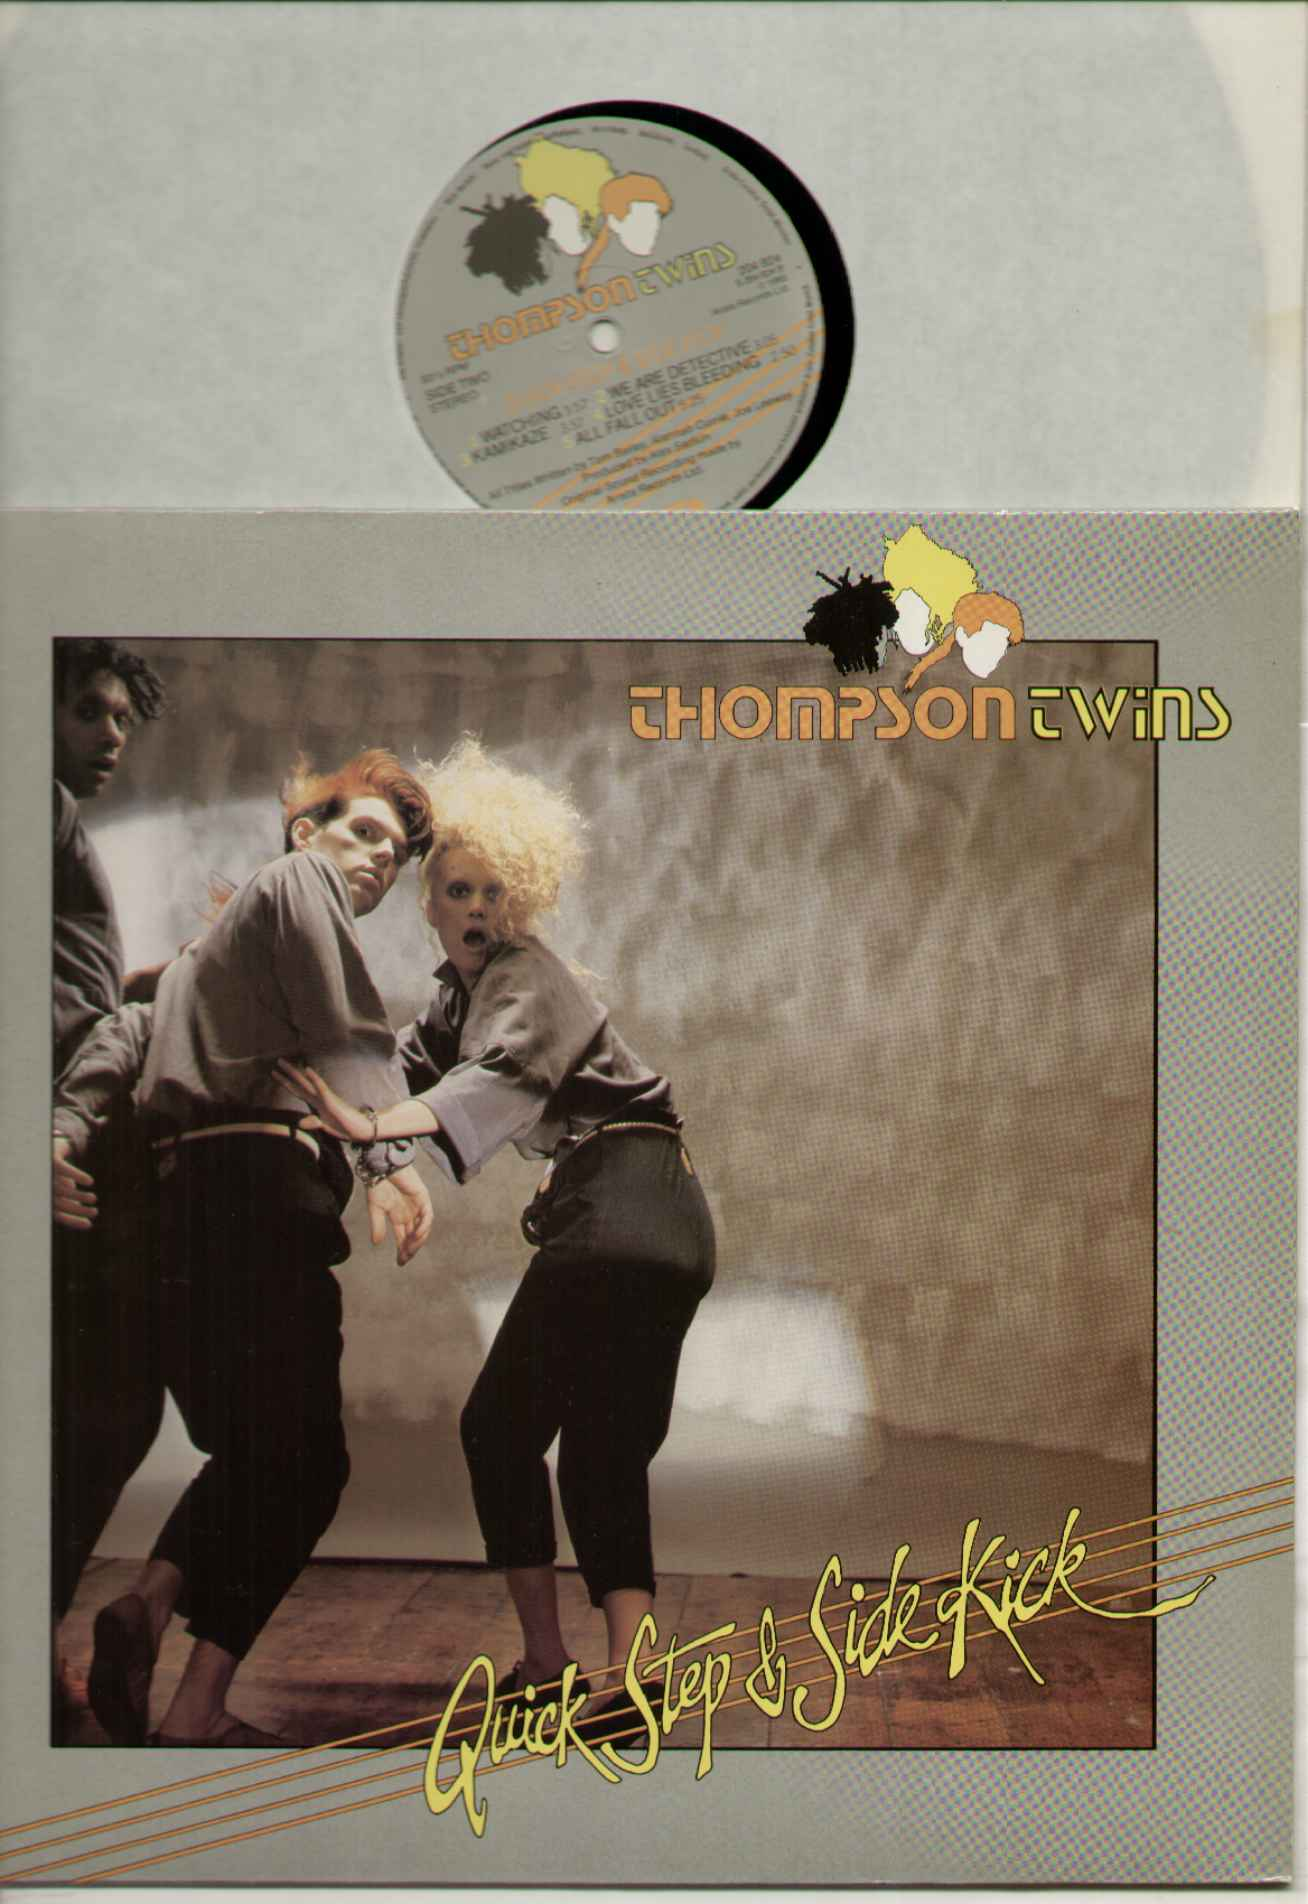 Thompson Twins - Quick Step And Side Kick LP